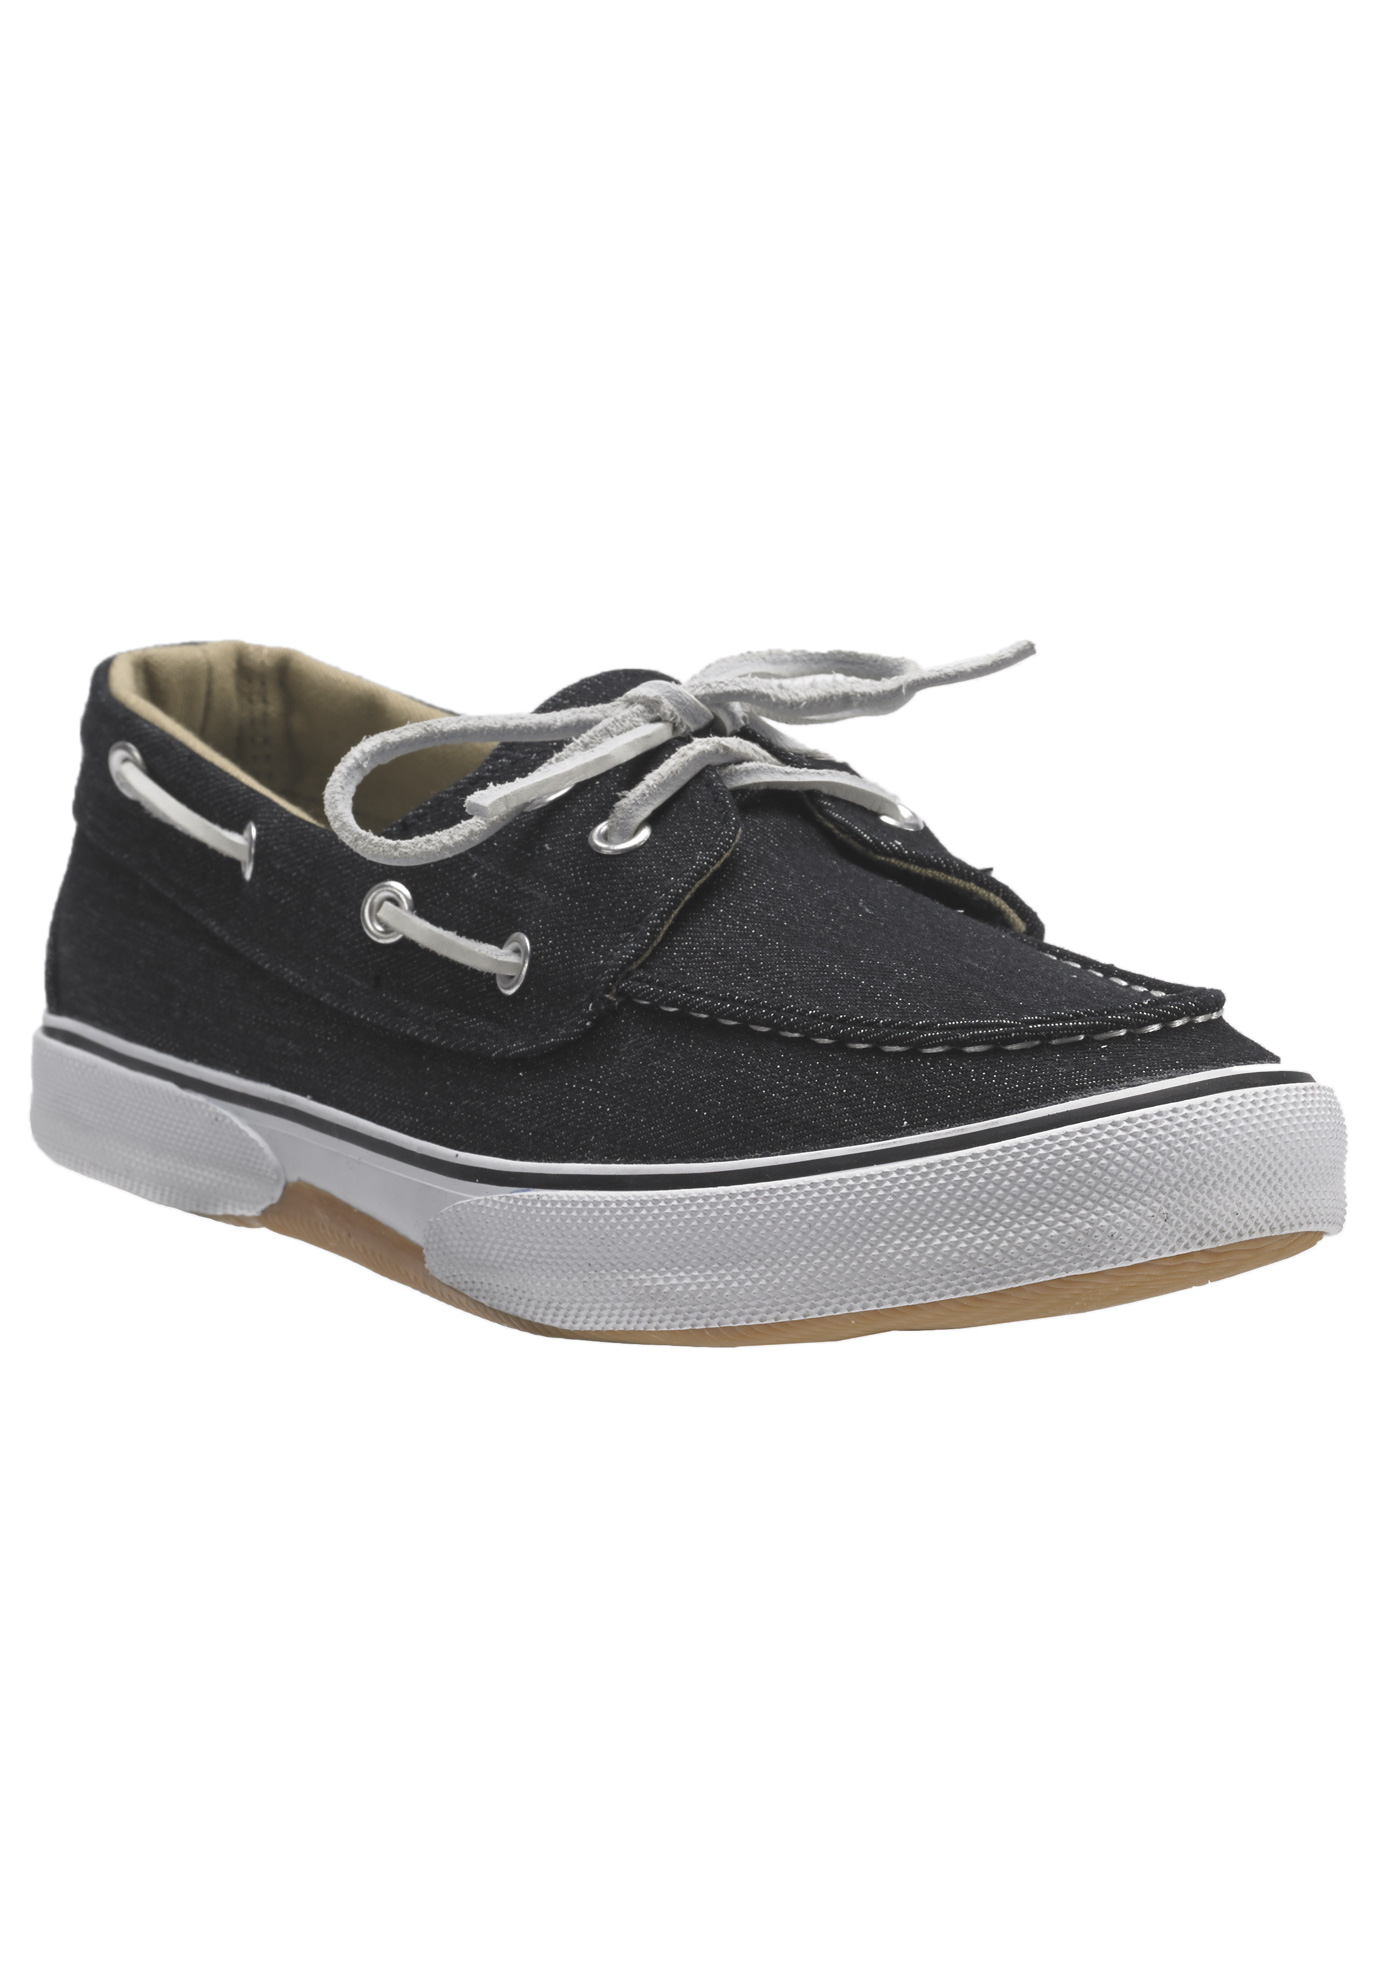 Canvas Velcro 174 Boat Shoe Plus Size Shoes Amp Accessories King Size